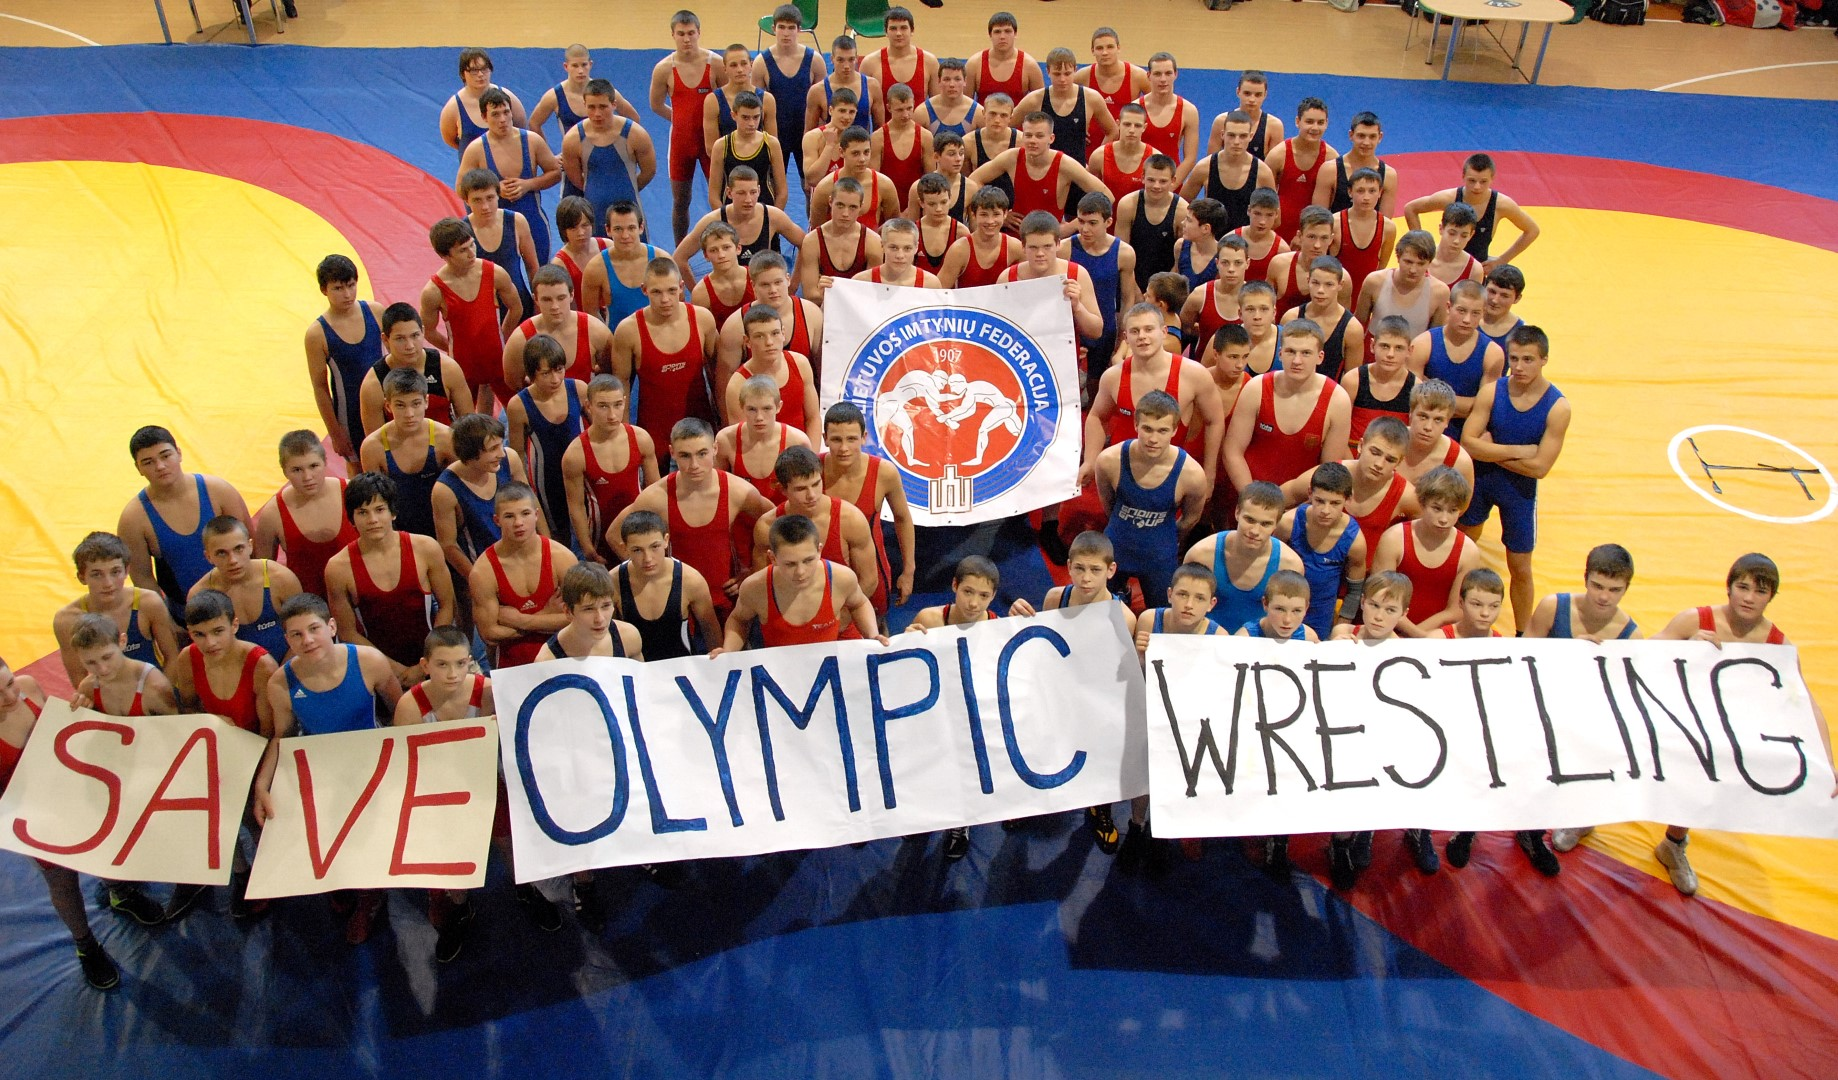 Save Olympic Wrestling Cover Photo Lietuvos imtyni...